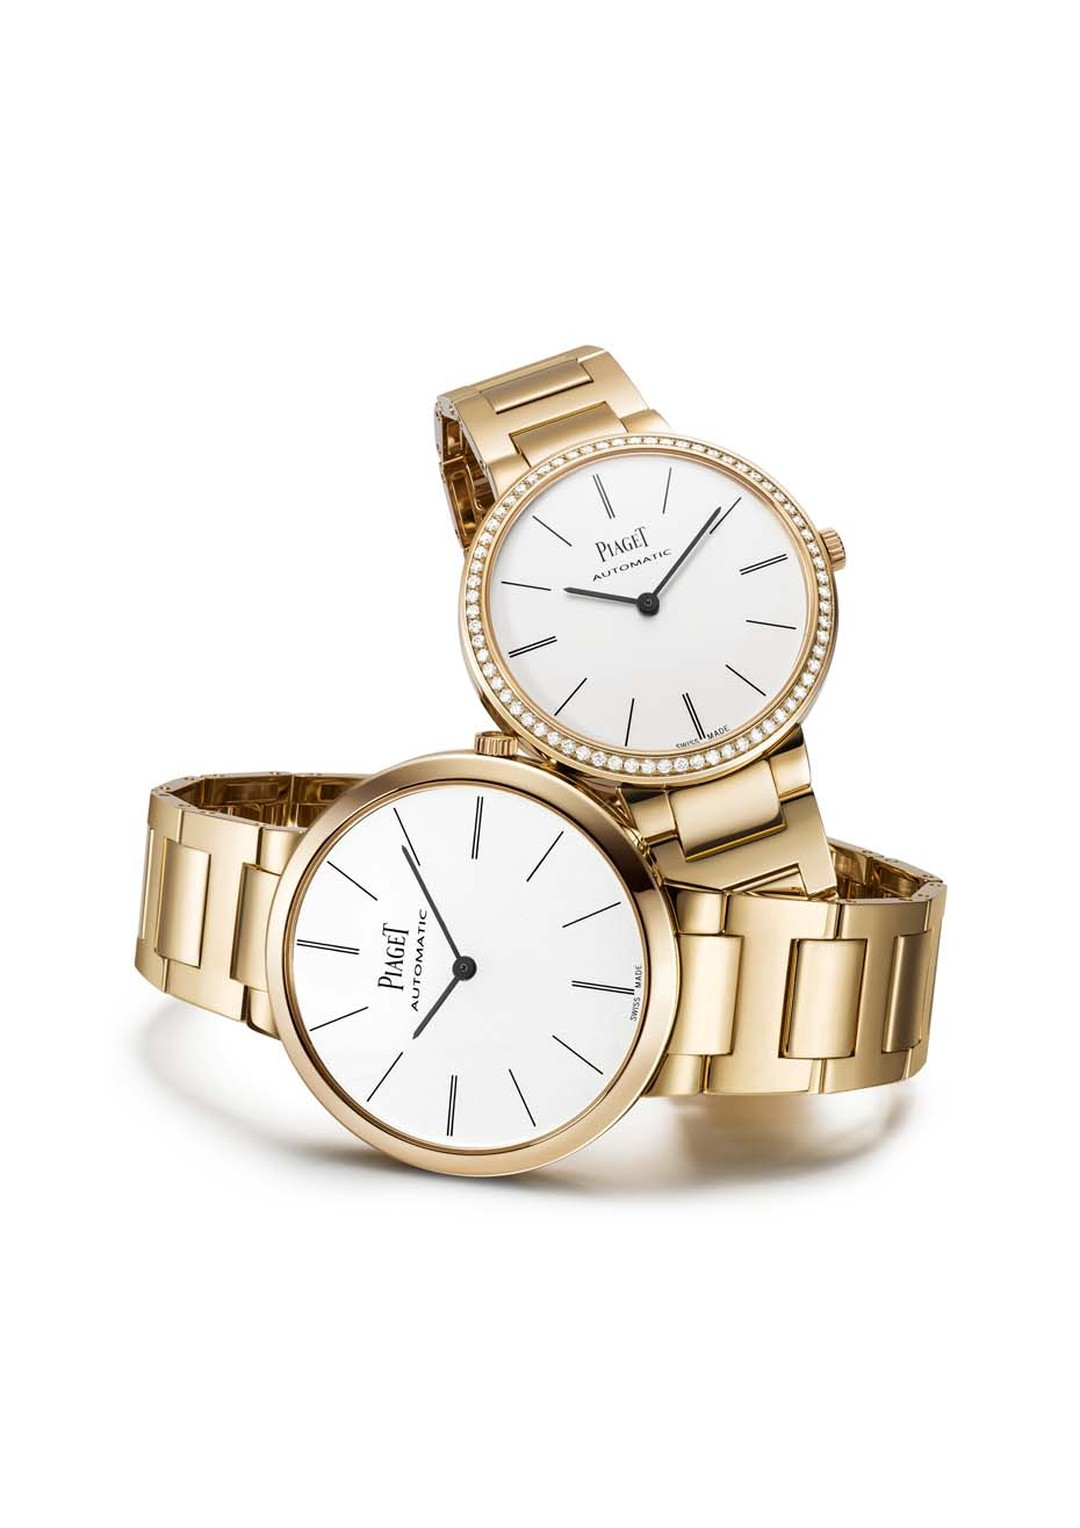 Piaget watches adds an extra touch of class to its Altiplano collection with the incorporation of  a rose gold bracelet for both its men's and ladies' models.